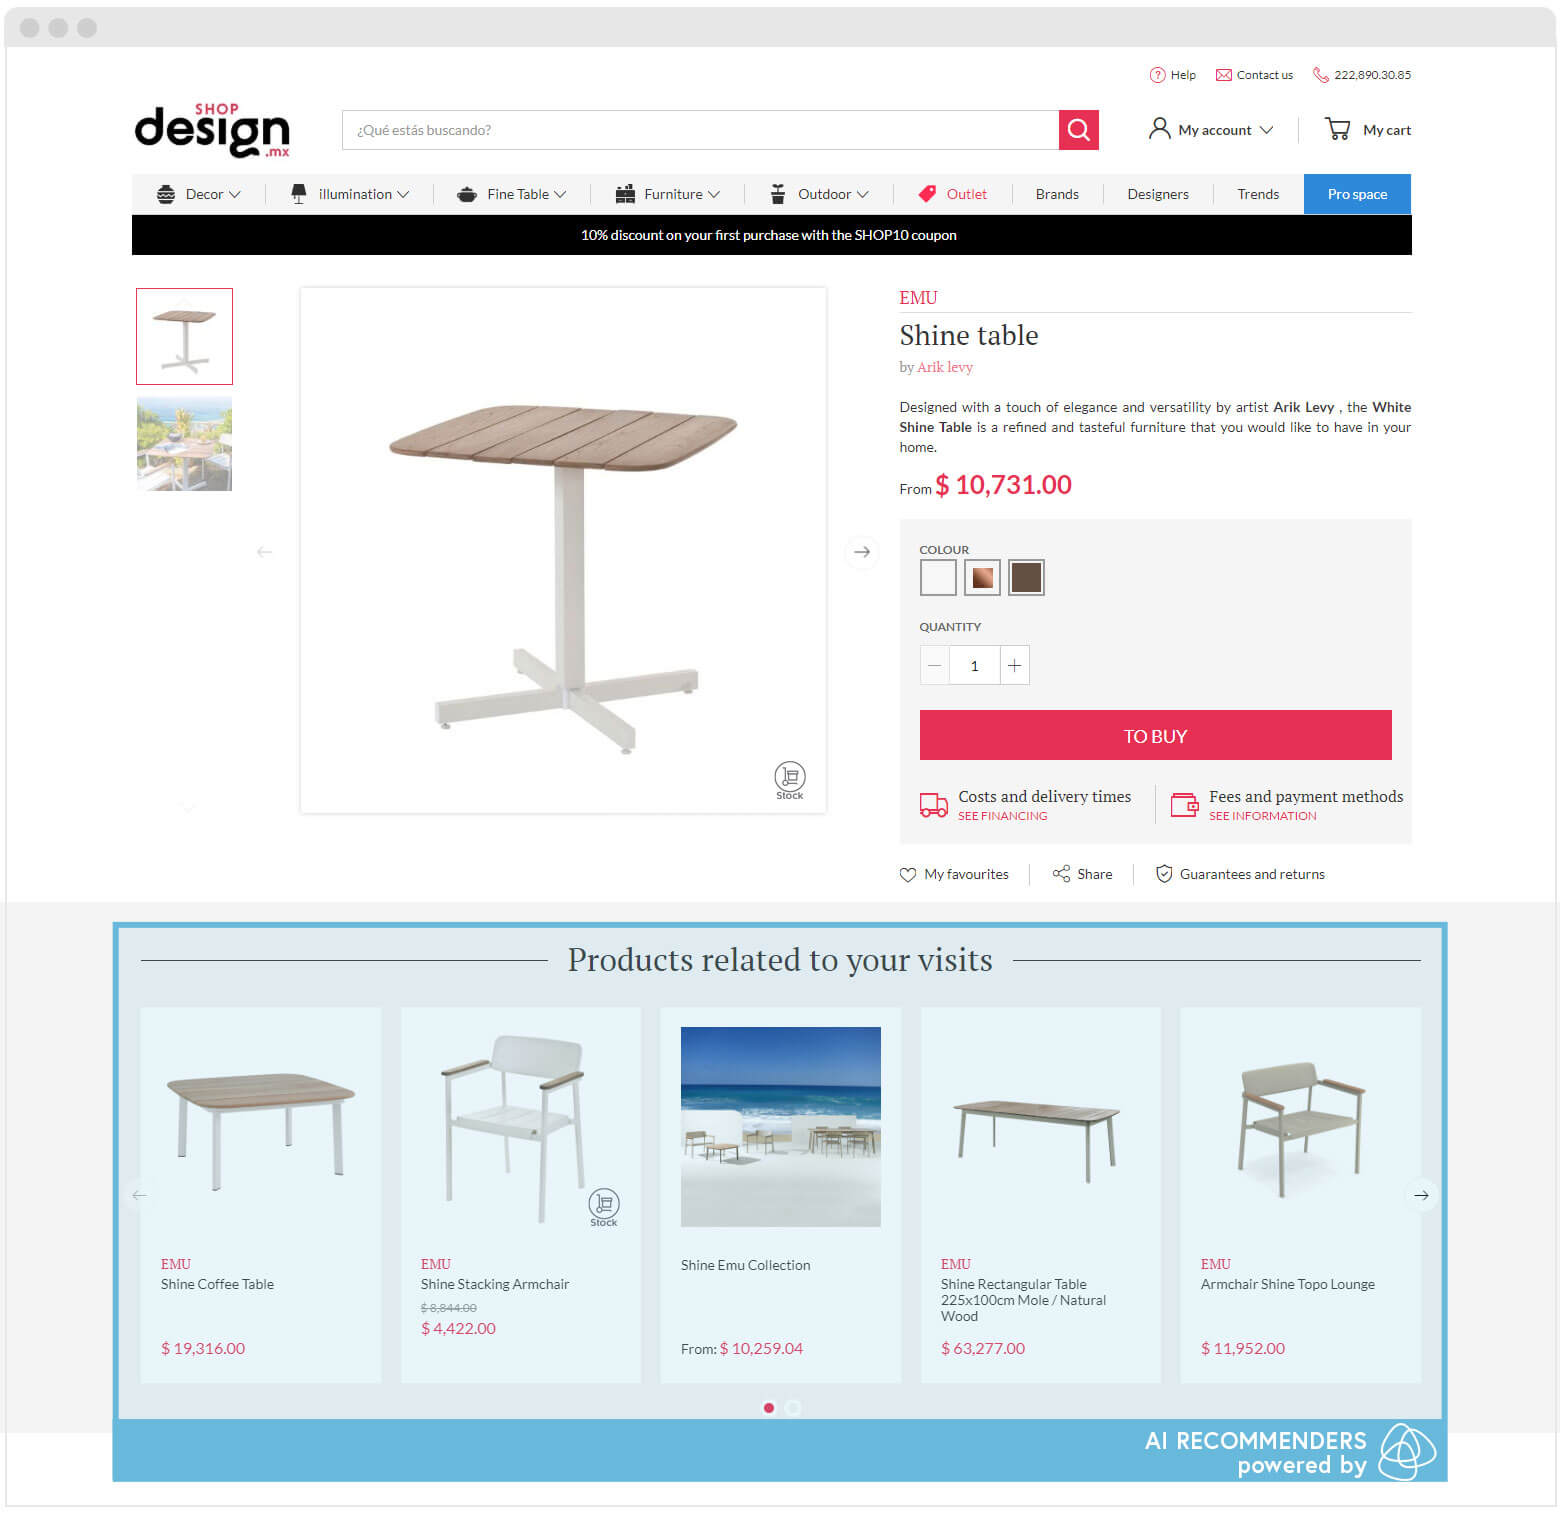 Shopdesign Product Page Recommenders